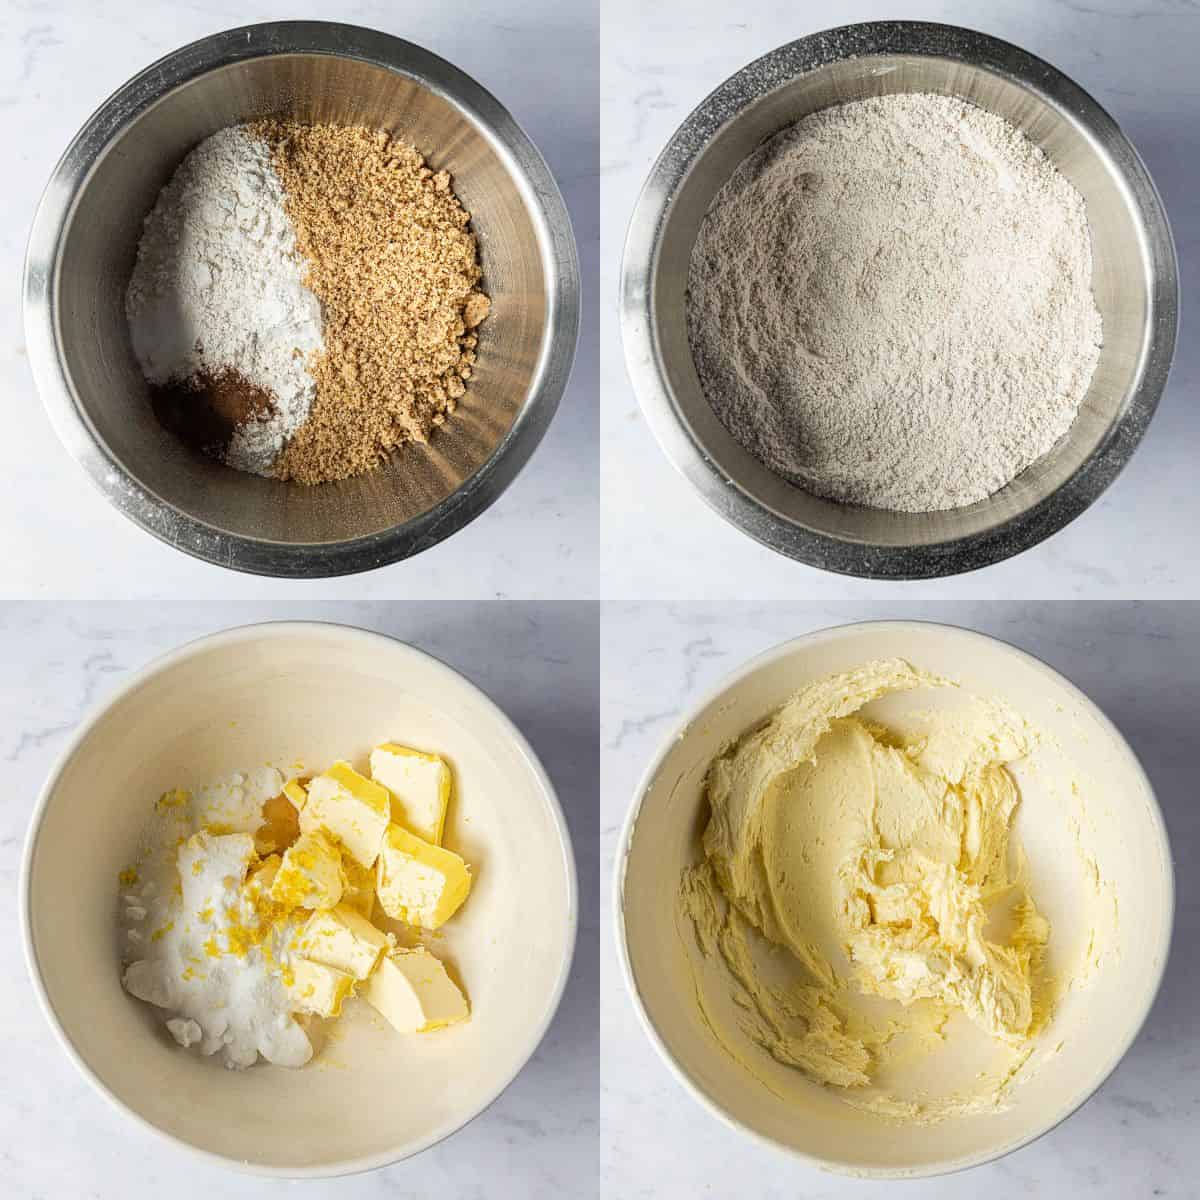 Step 1, a four image collage of mixing the dry ingredients and whisking the butter and sugar.